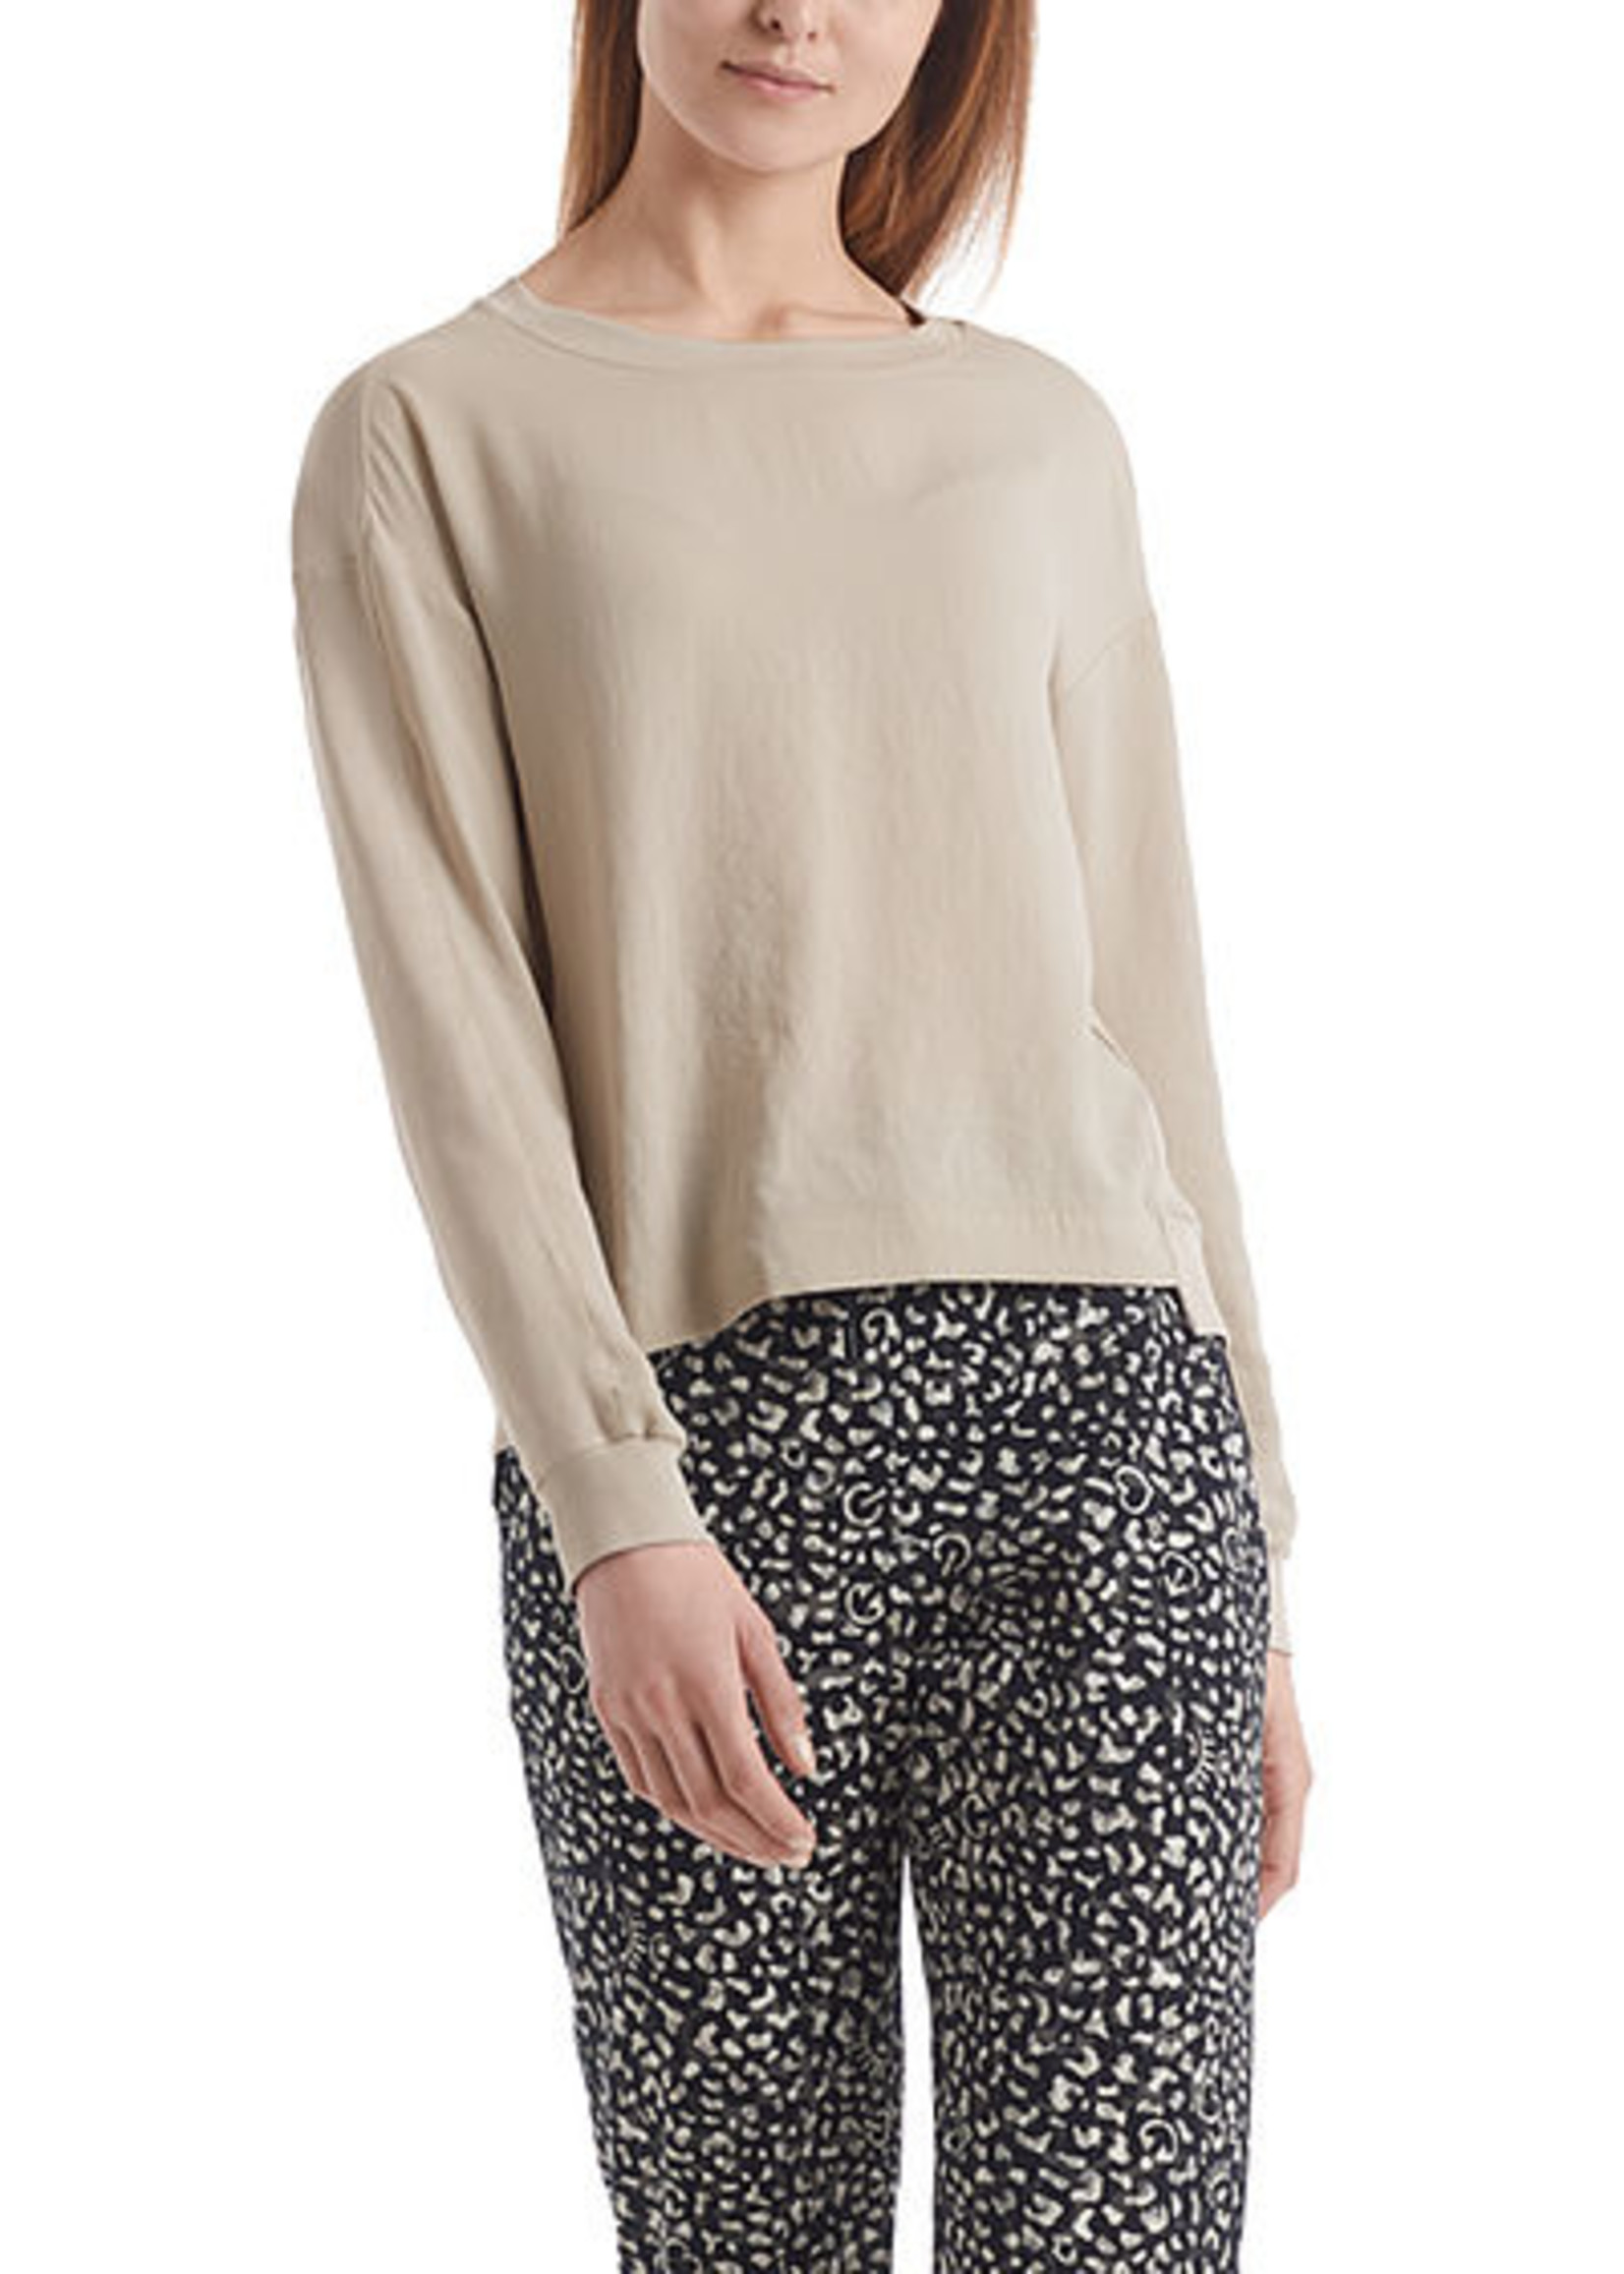 Marccain Sports Blouse RS 55.09 J67 seed